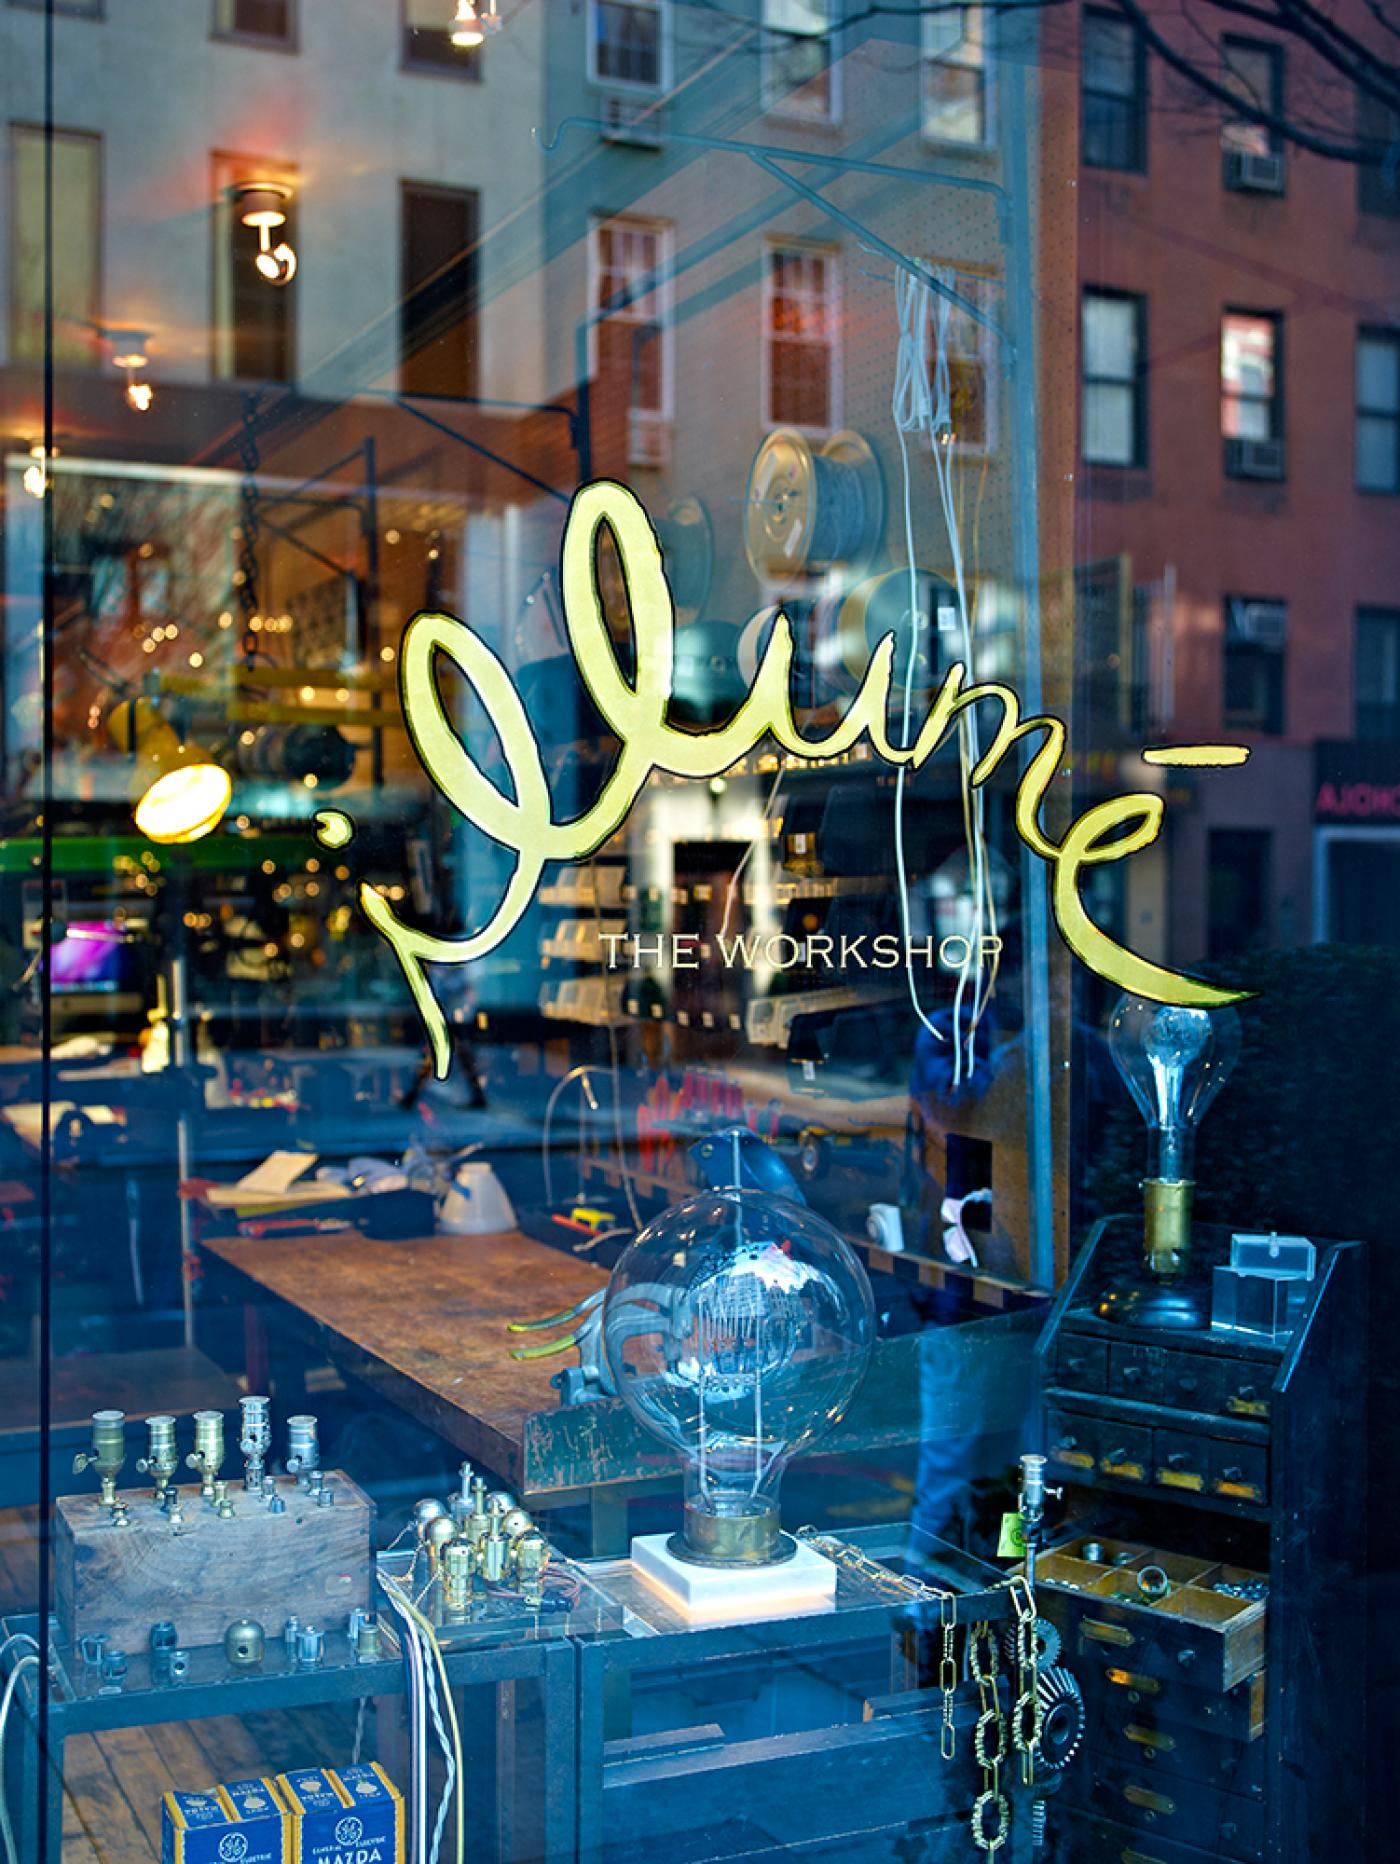 Top 5 Lighting Stores You Can Find In New York City 5 Lighting Stores Top 5 Lighting Stores You Can Find In New York City Top 5 Lighting Stores You Can Find In New York City 5